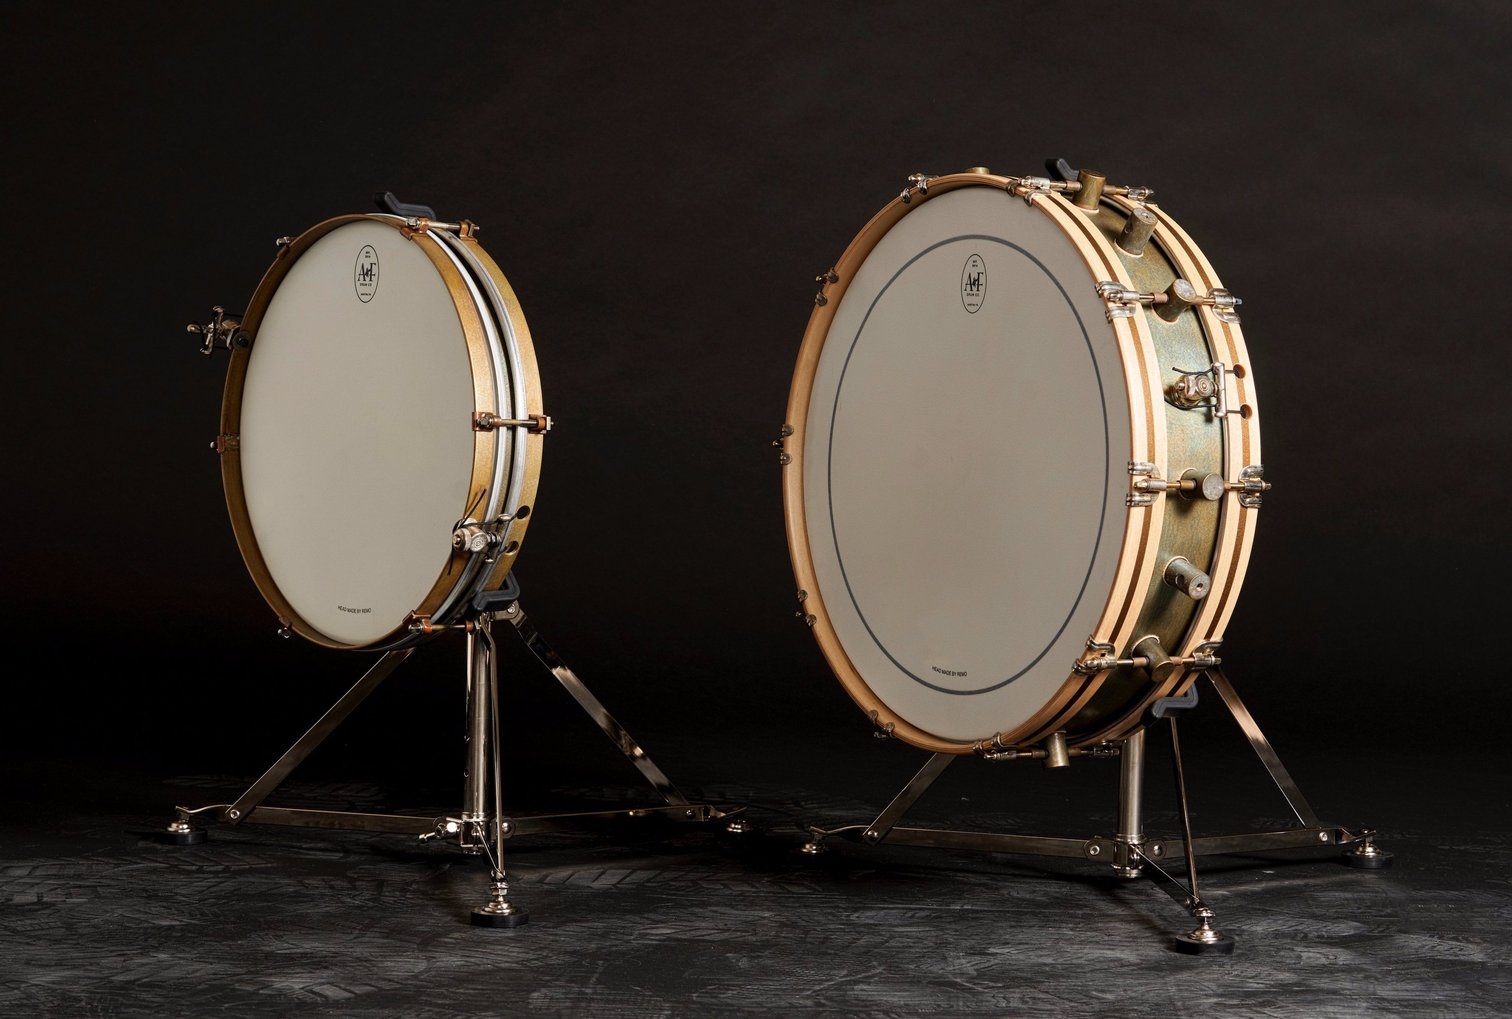 A&F 4x18 Gun Shot Snare with Stand